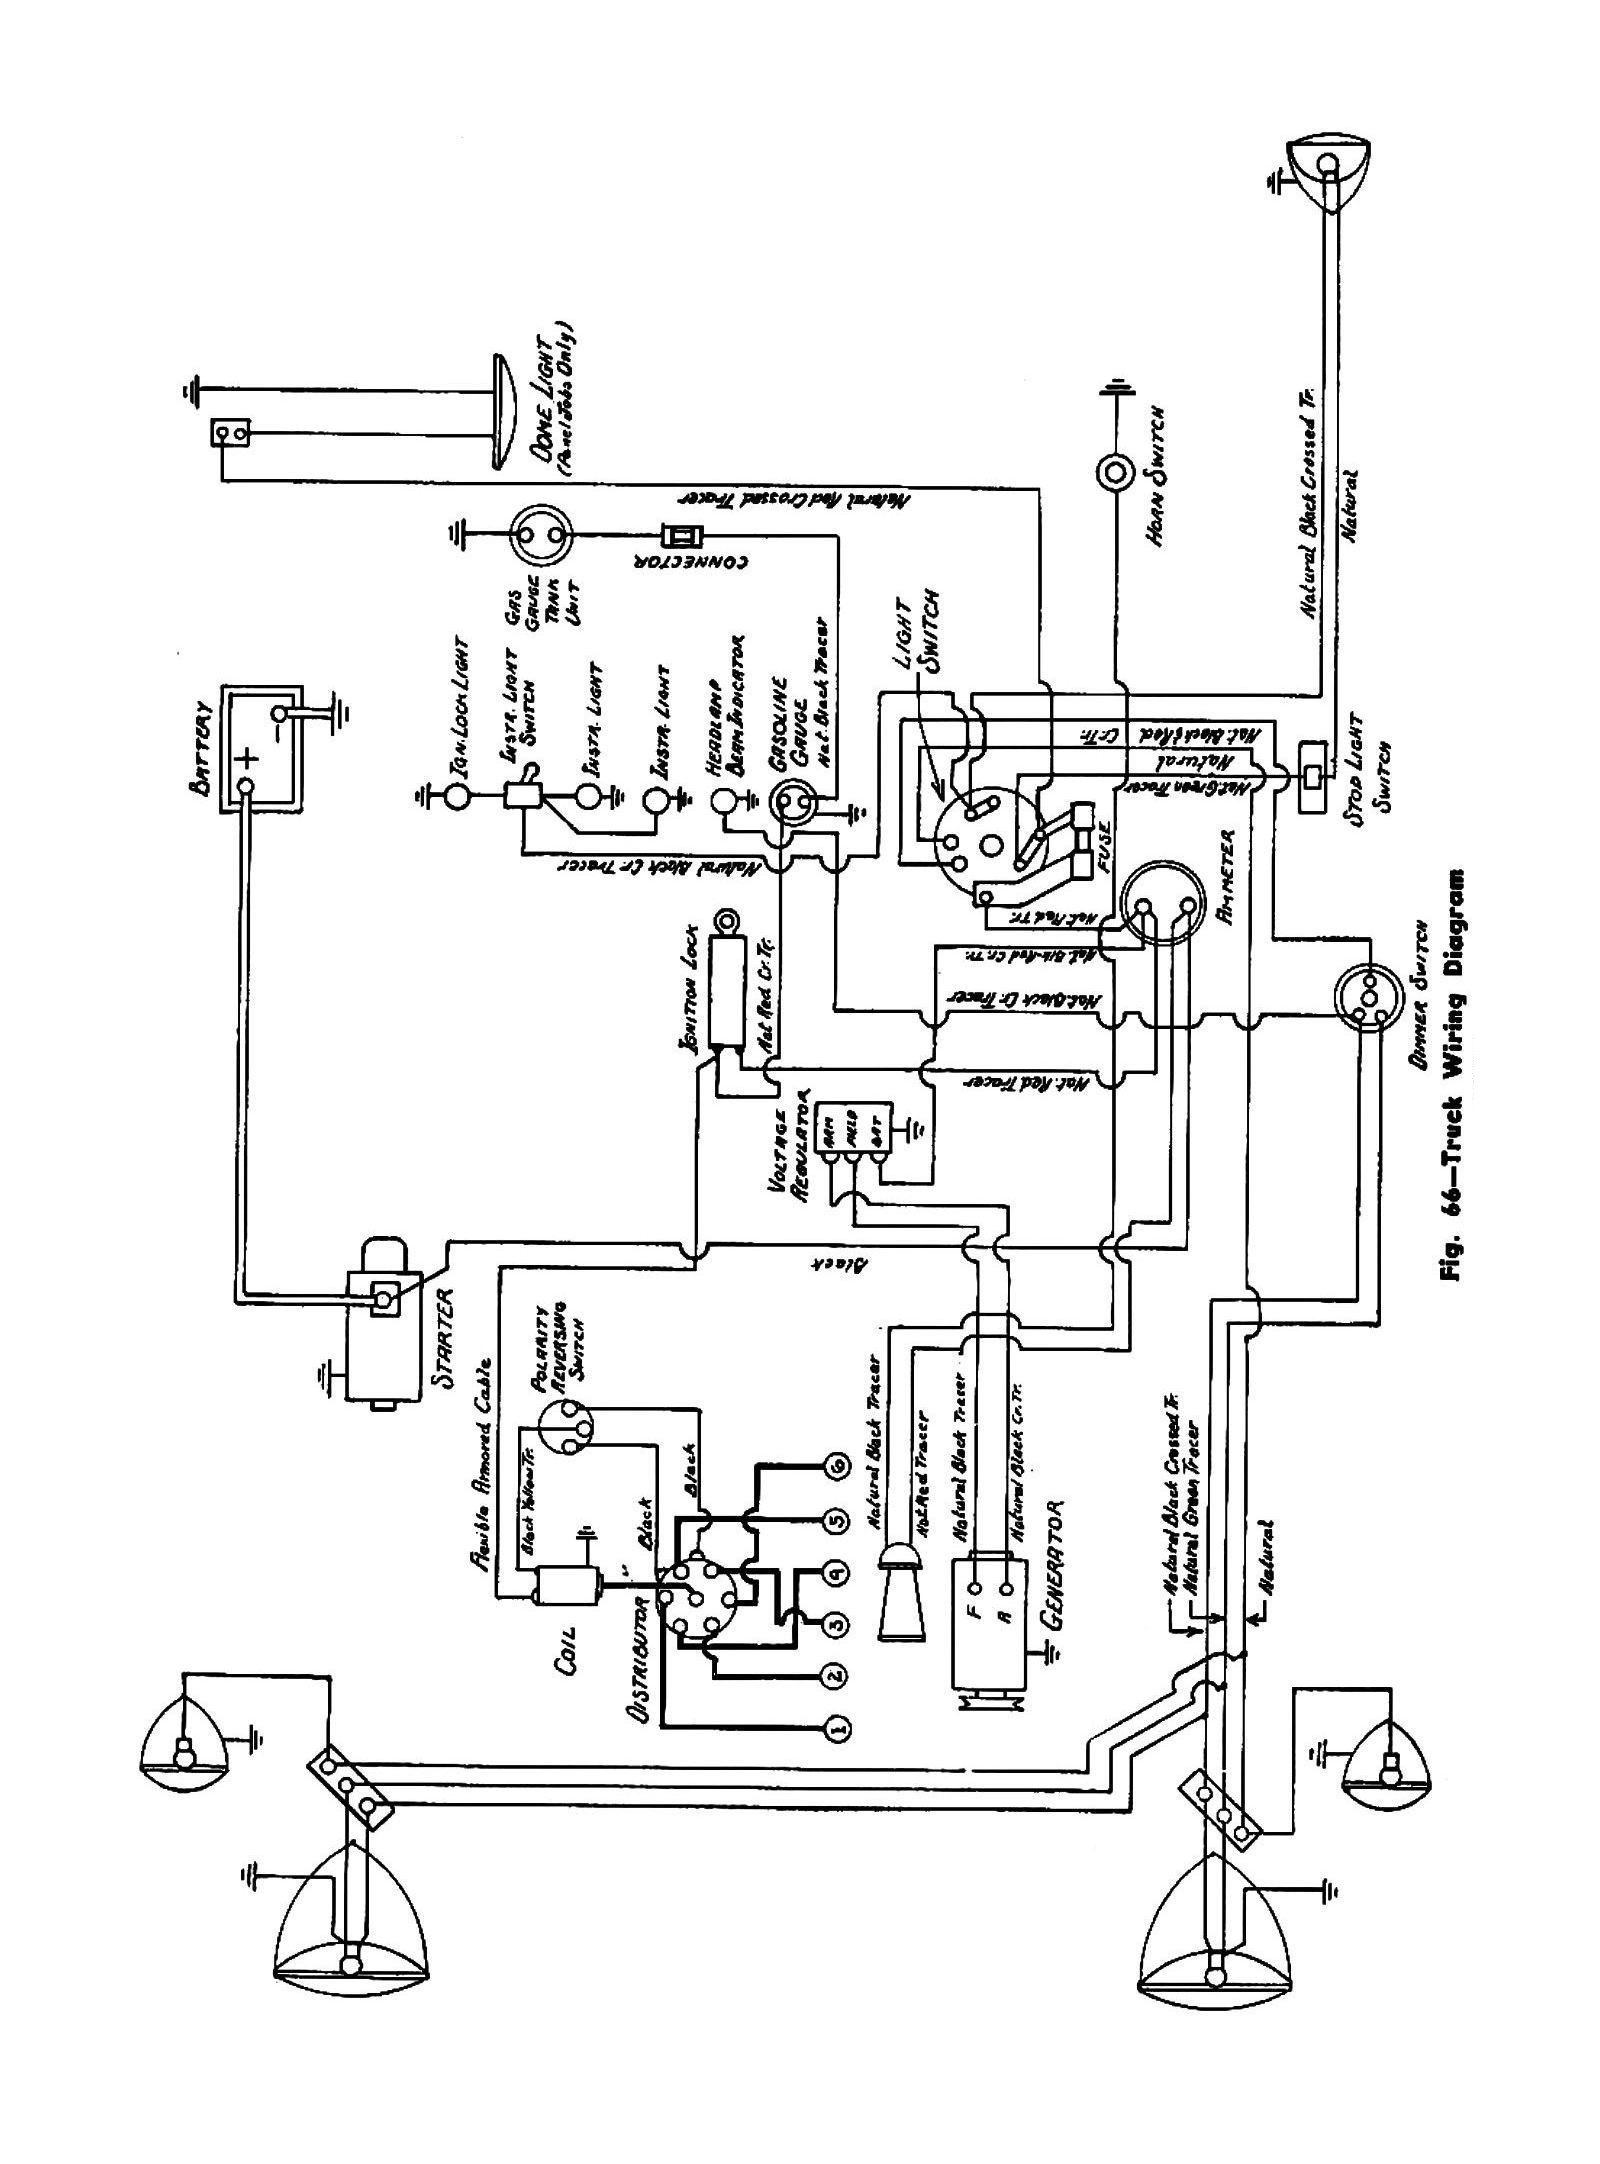 Wiring Diagrams for Trucks 1958 Gmc Truck Wiring Diagram Wiring Diagram Of Wiring Diagrams for Trucks